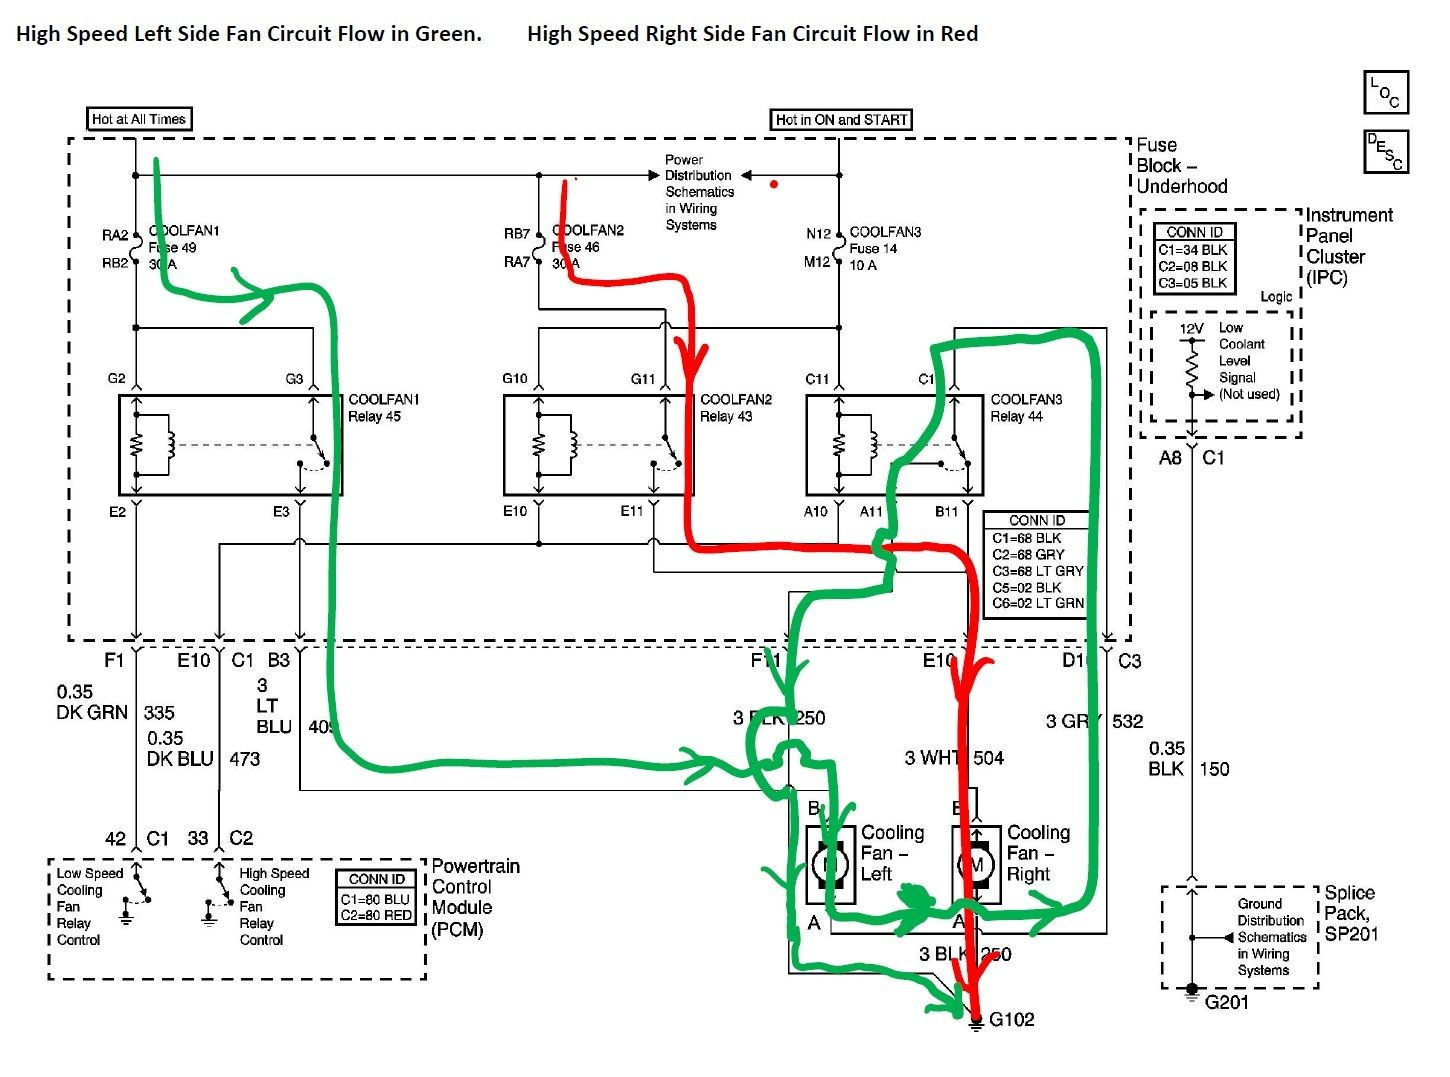 northern electric radiator fan wiring diagram schematic diagram  northern electric radiator fan wiring diagram #1